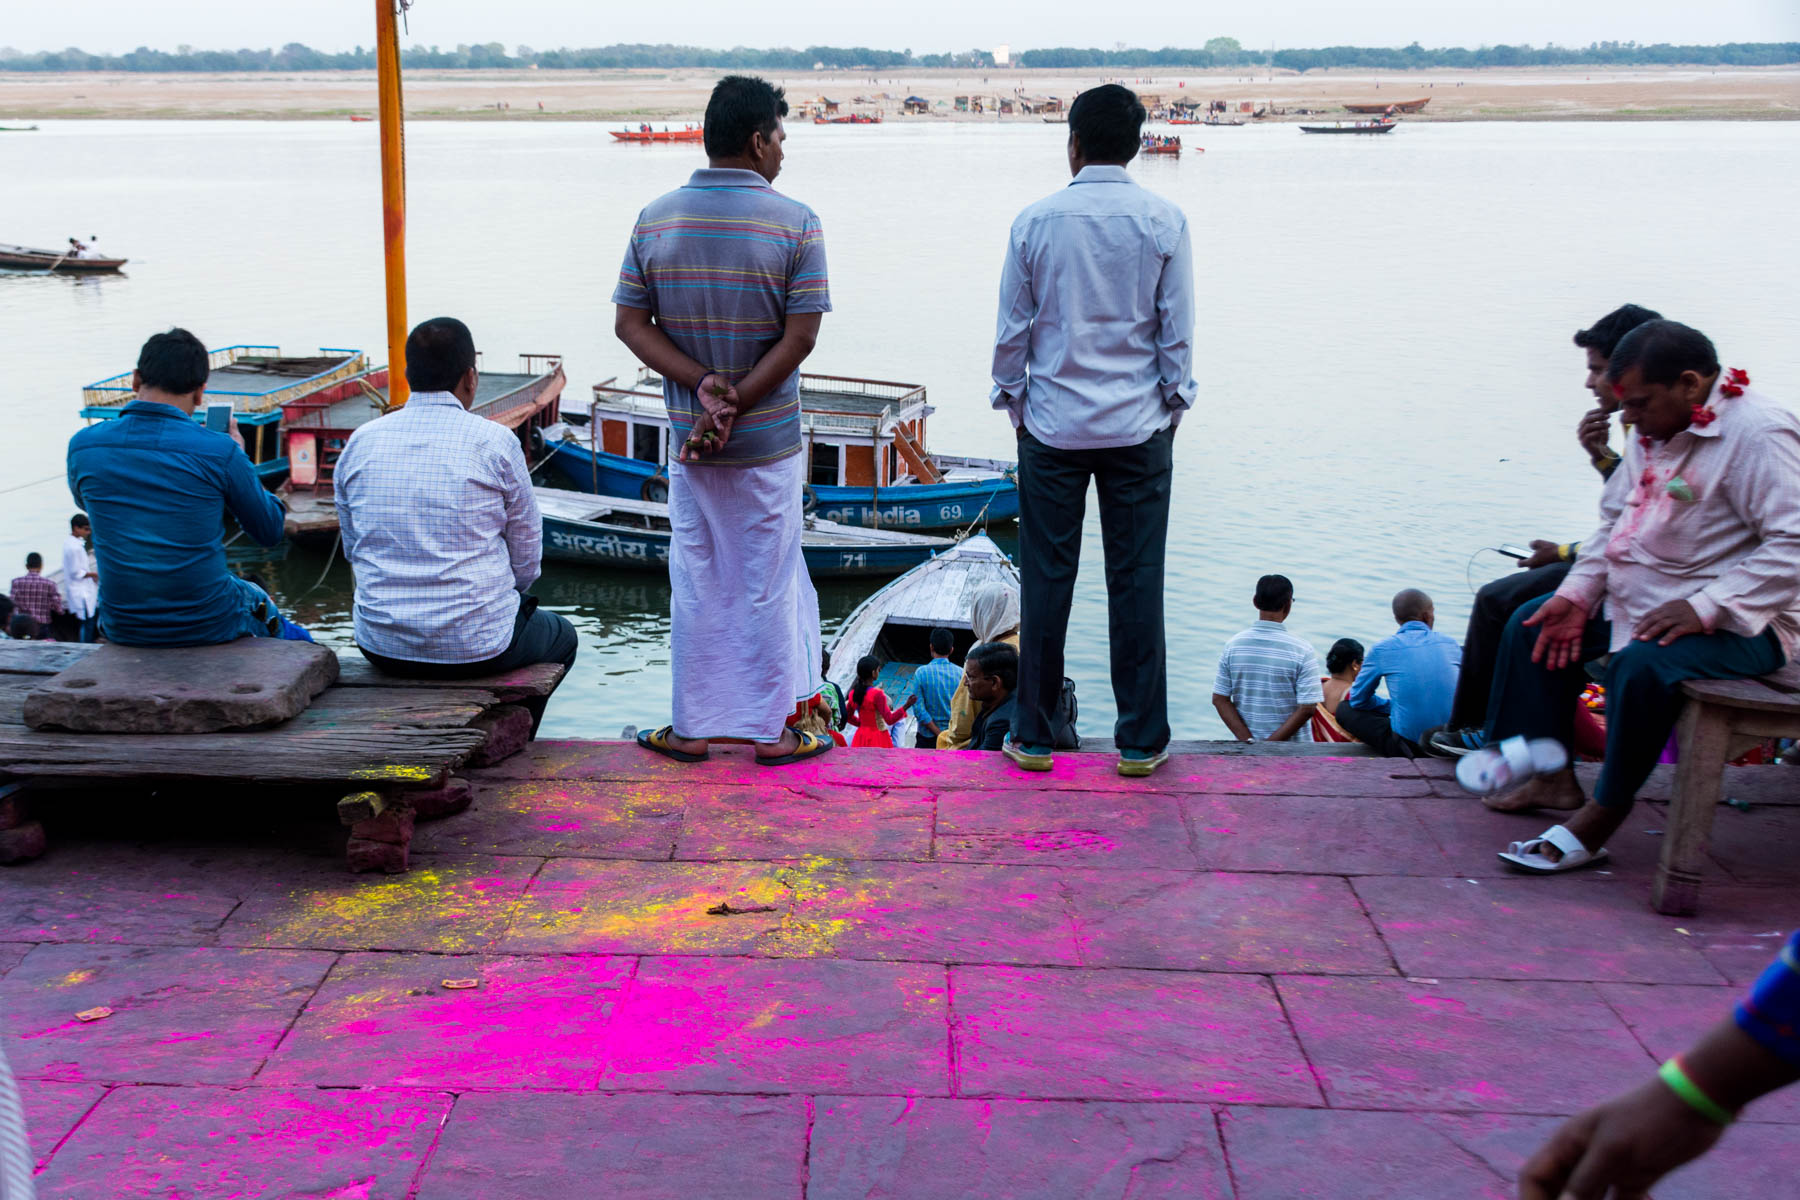 What you need know about playing Holi in Varanasi, India - The post-Holi war zone on the ghats of Varanasi - Lost With Purpose